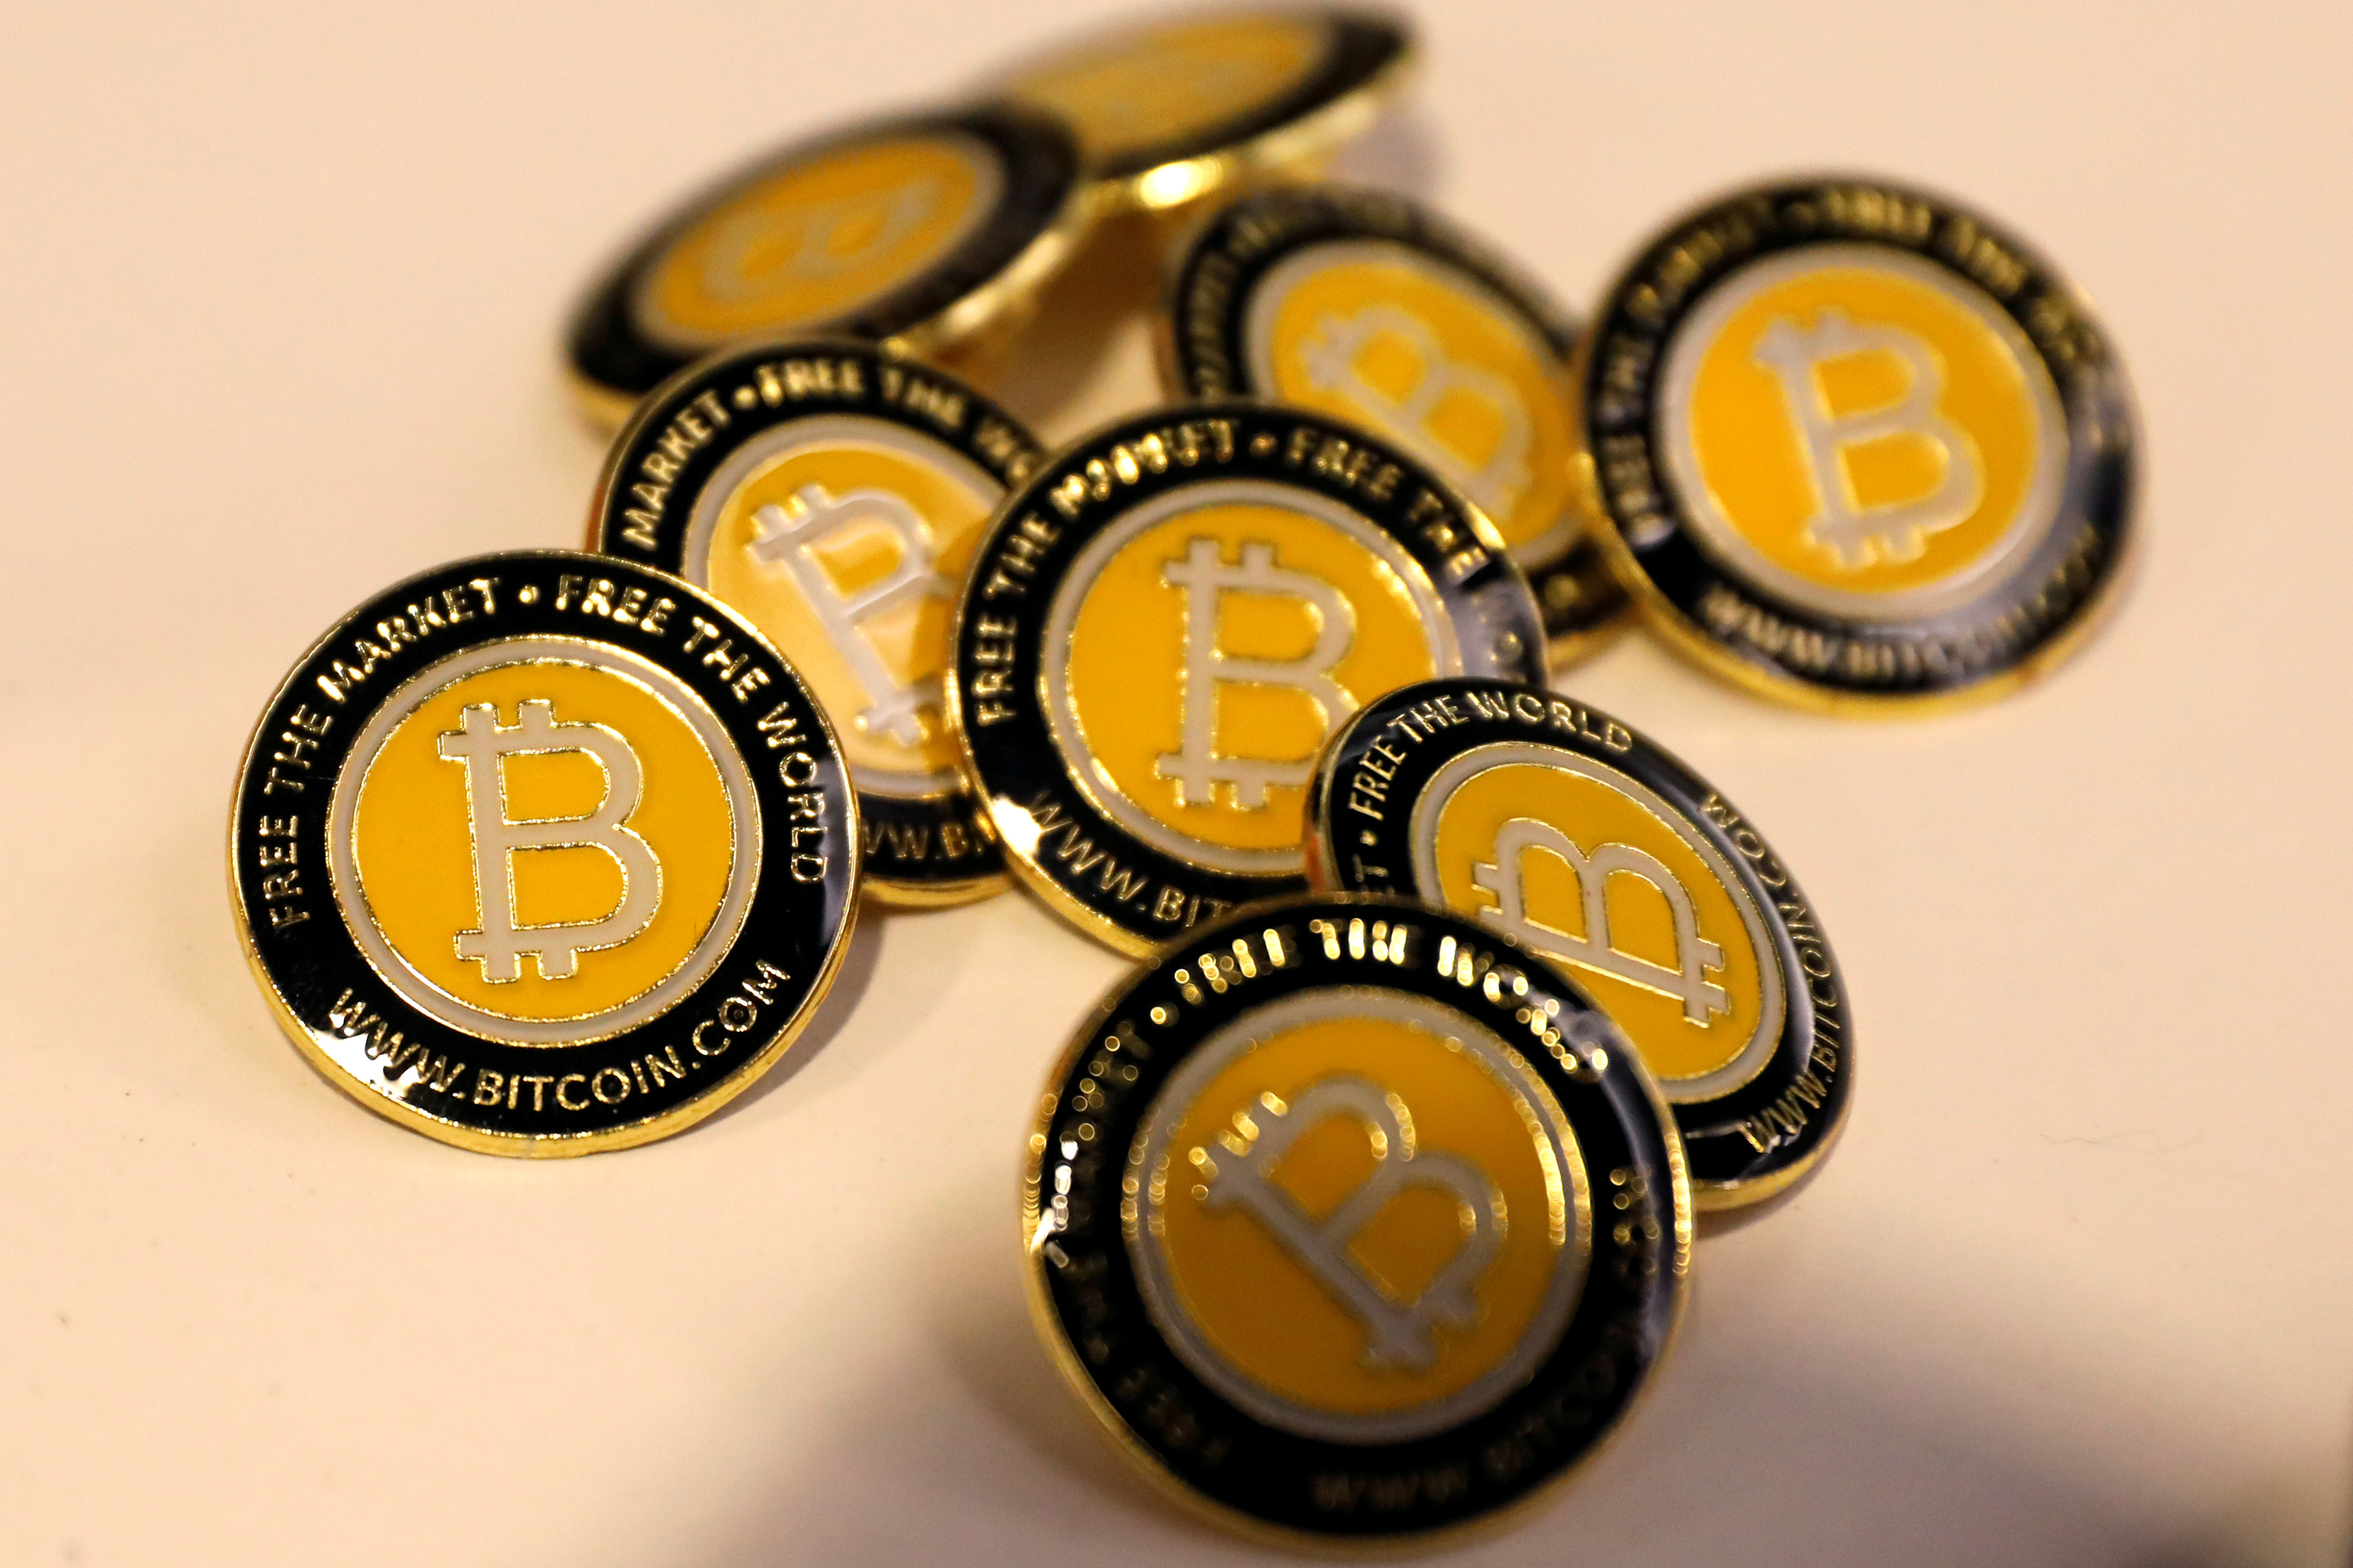 FILE - Bitcoin.com buttons are seen displayed on the floor of the Consensus 2018 blockchain technology conference in New York City, New York, U.S., May 16, 2018. REUTERS/Mike Segar/File Photo